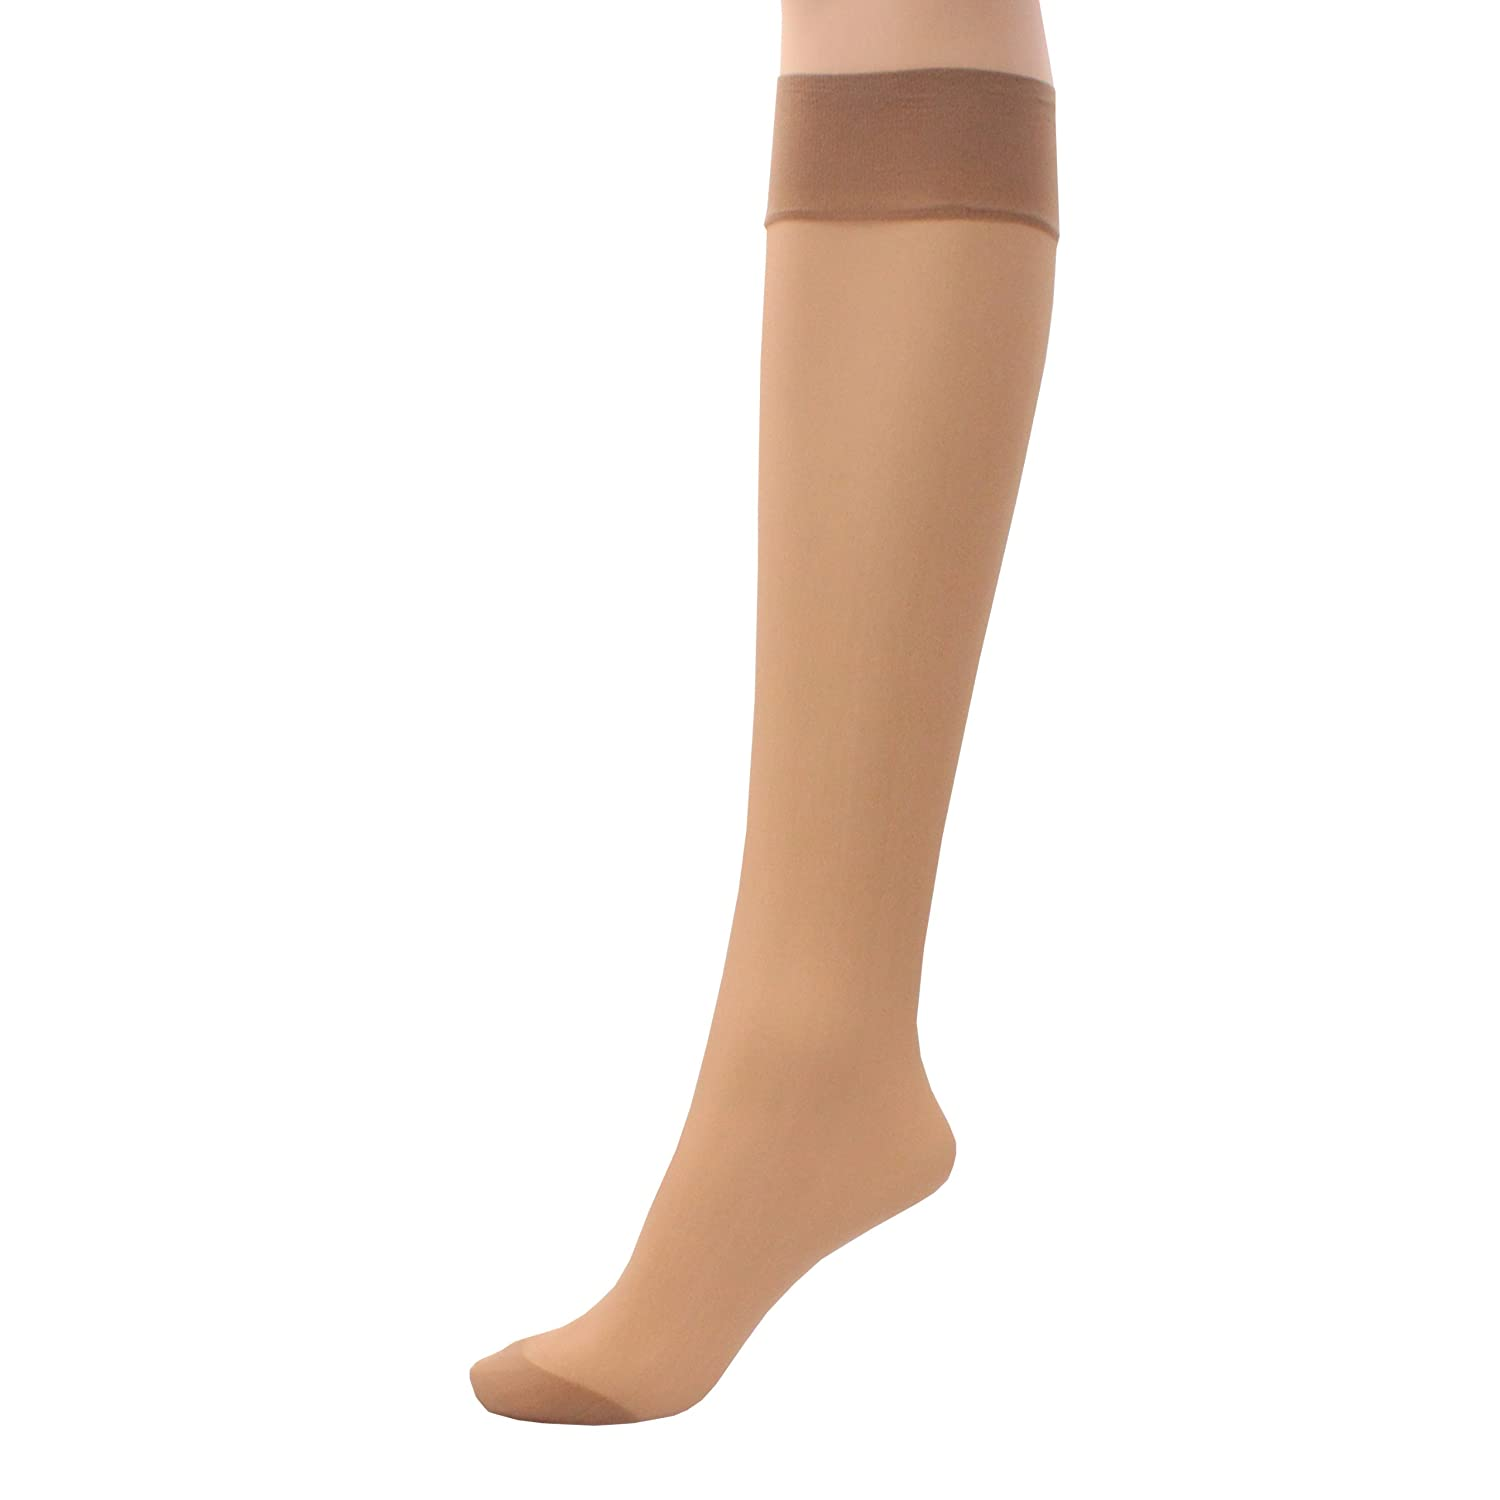 6 x Ladies / Women 100% Nylon Knee High Pop Socks with Comfort Top Britwear